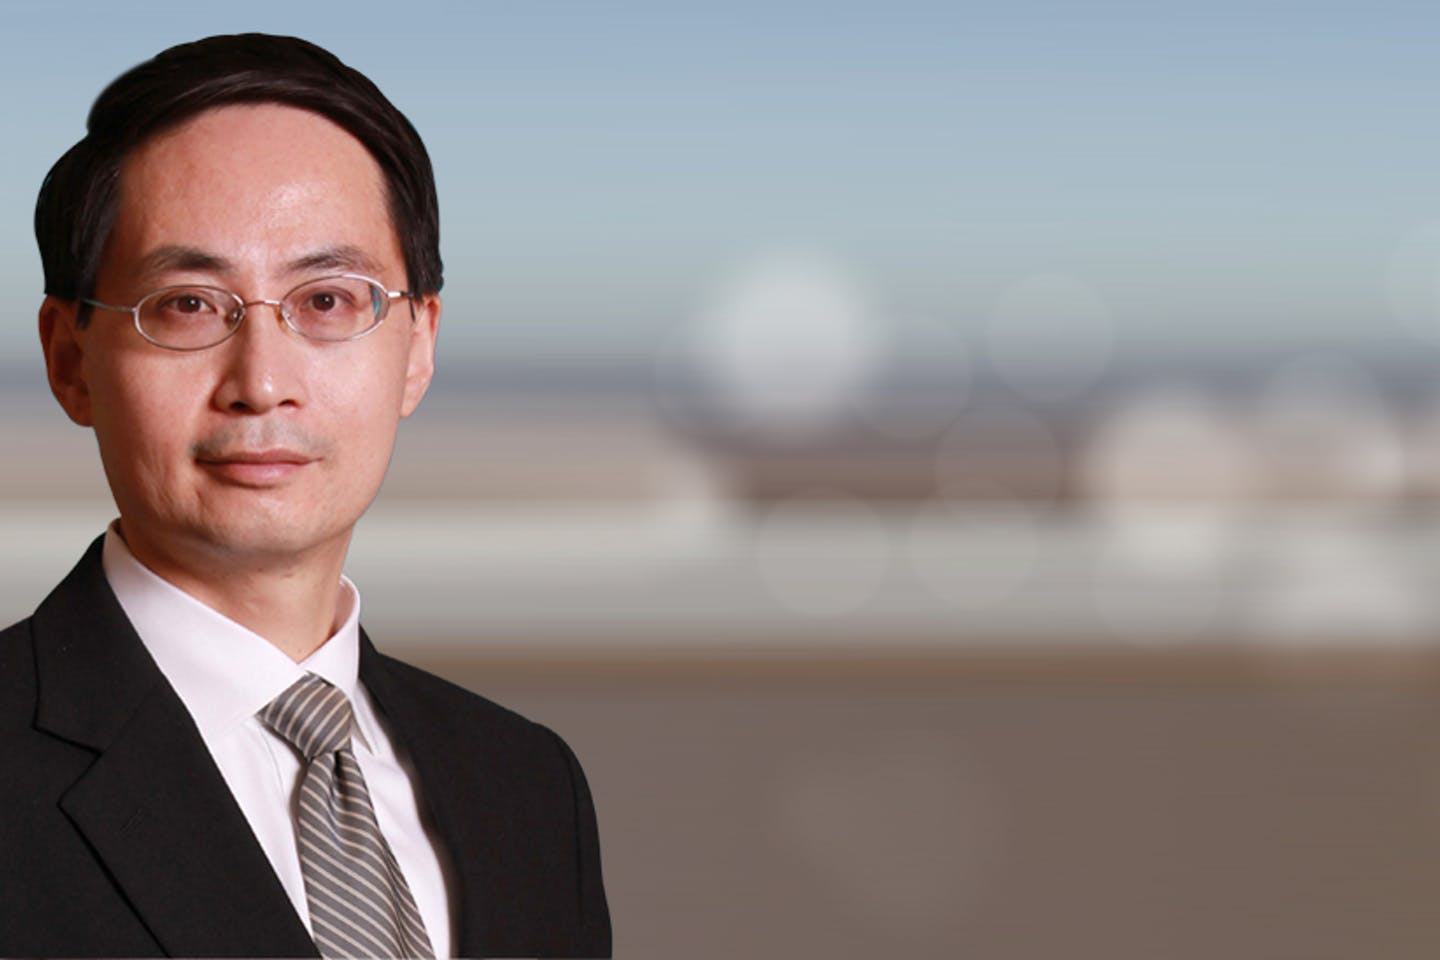 Dr Ma Jun, chairman of Green Finance Committee of China Society for Finance and Banking